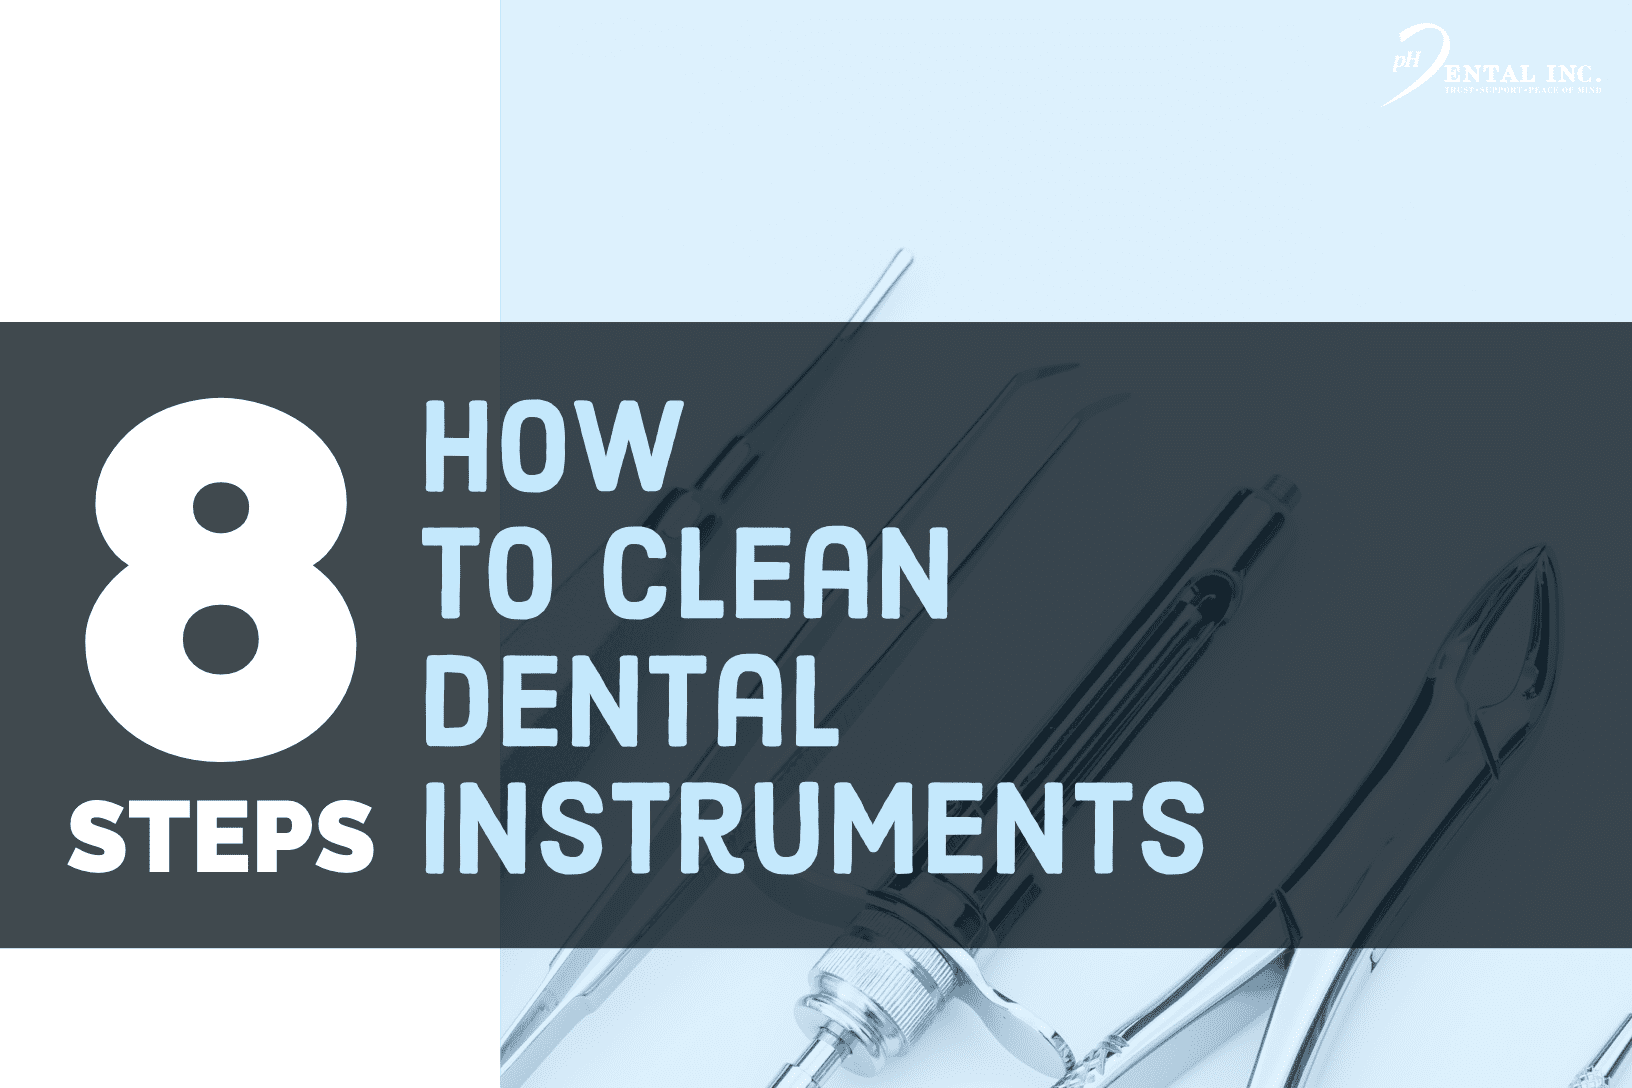 how to clean dental instruments featured image